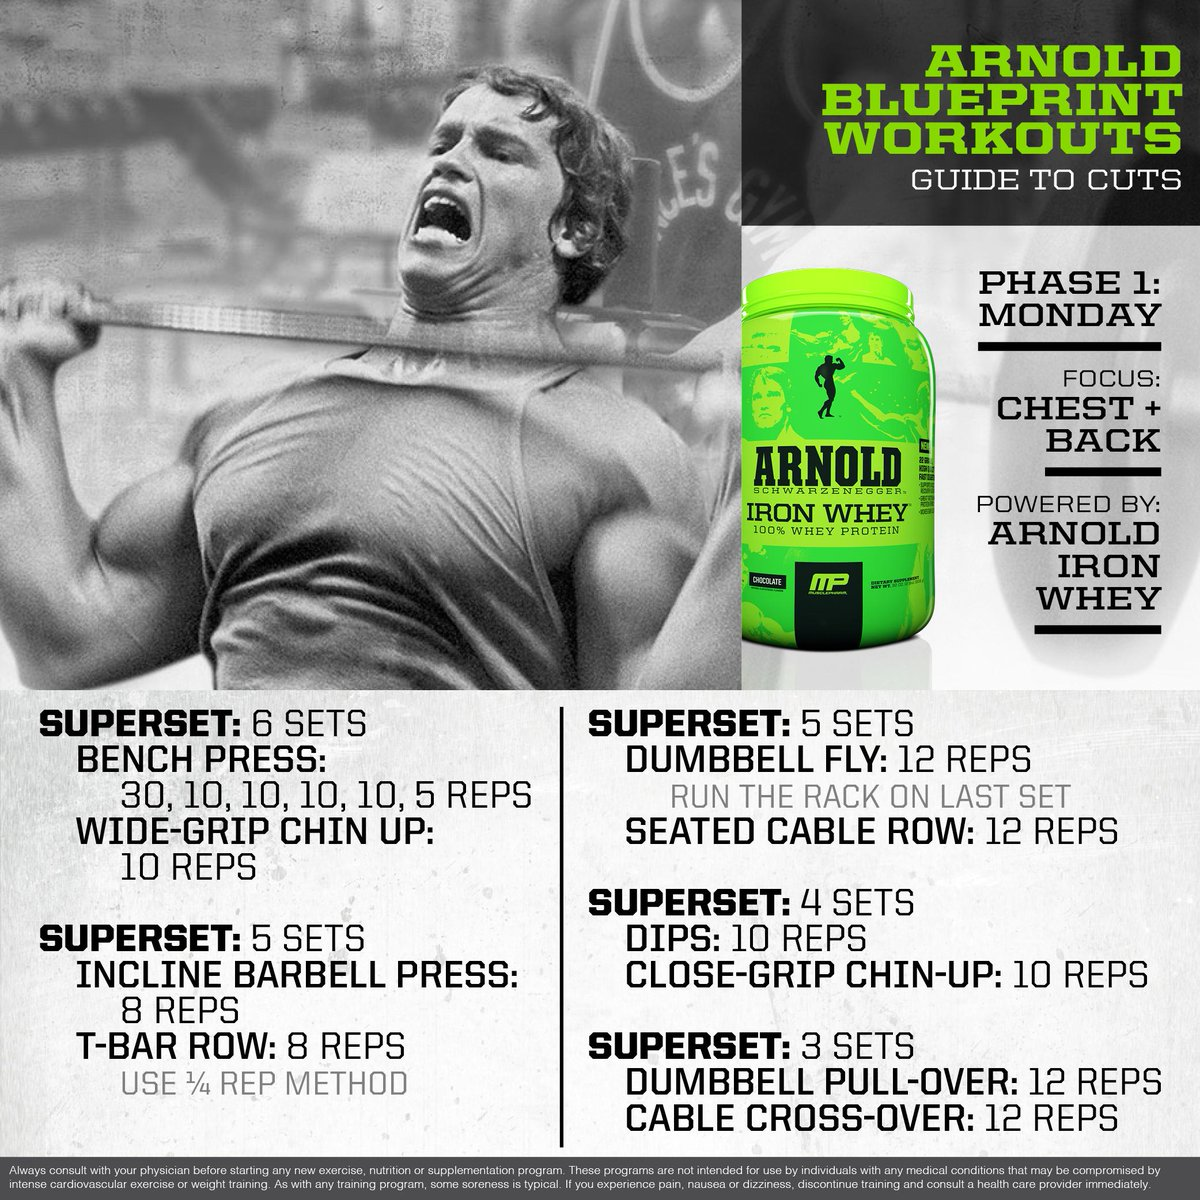 Musclepharm on twitter mp workout of the day arnold blueprint musclepharm on twitter mp workout of the day arnold blueprint to cut chest and back powered by ironwhey httptva19bu1t9e malvernweather